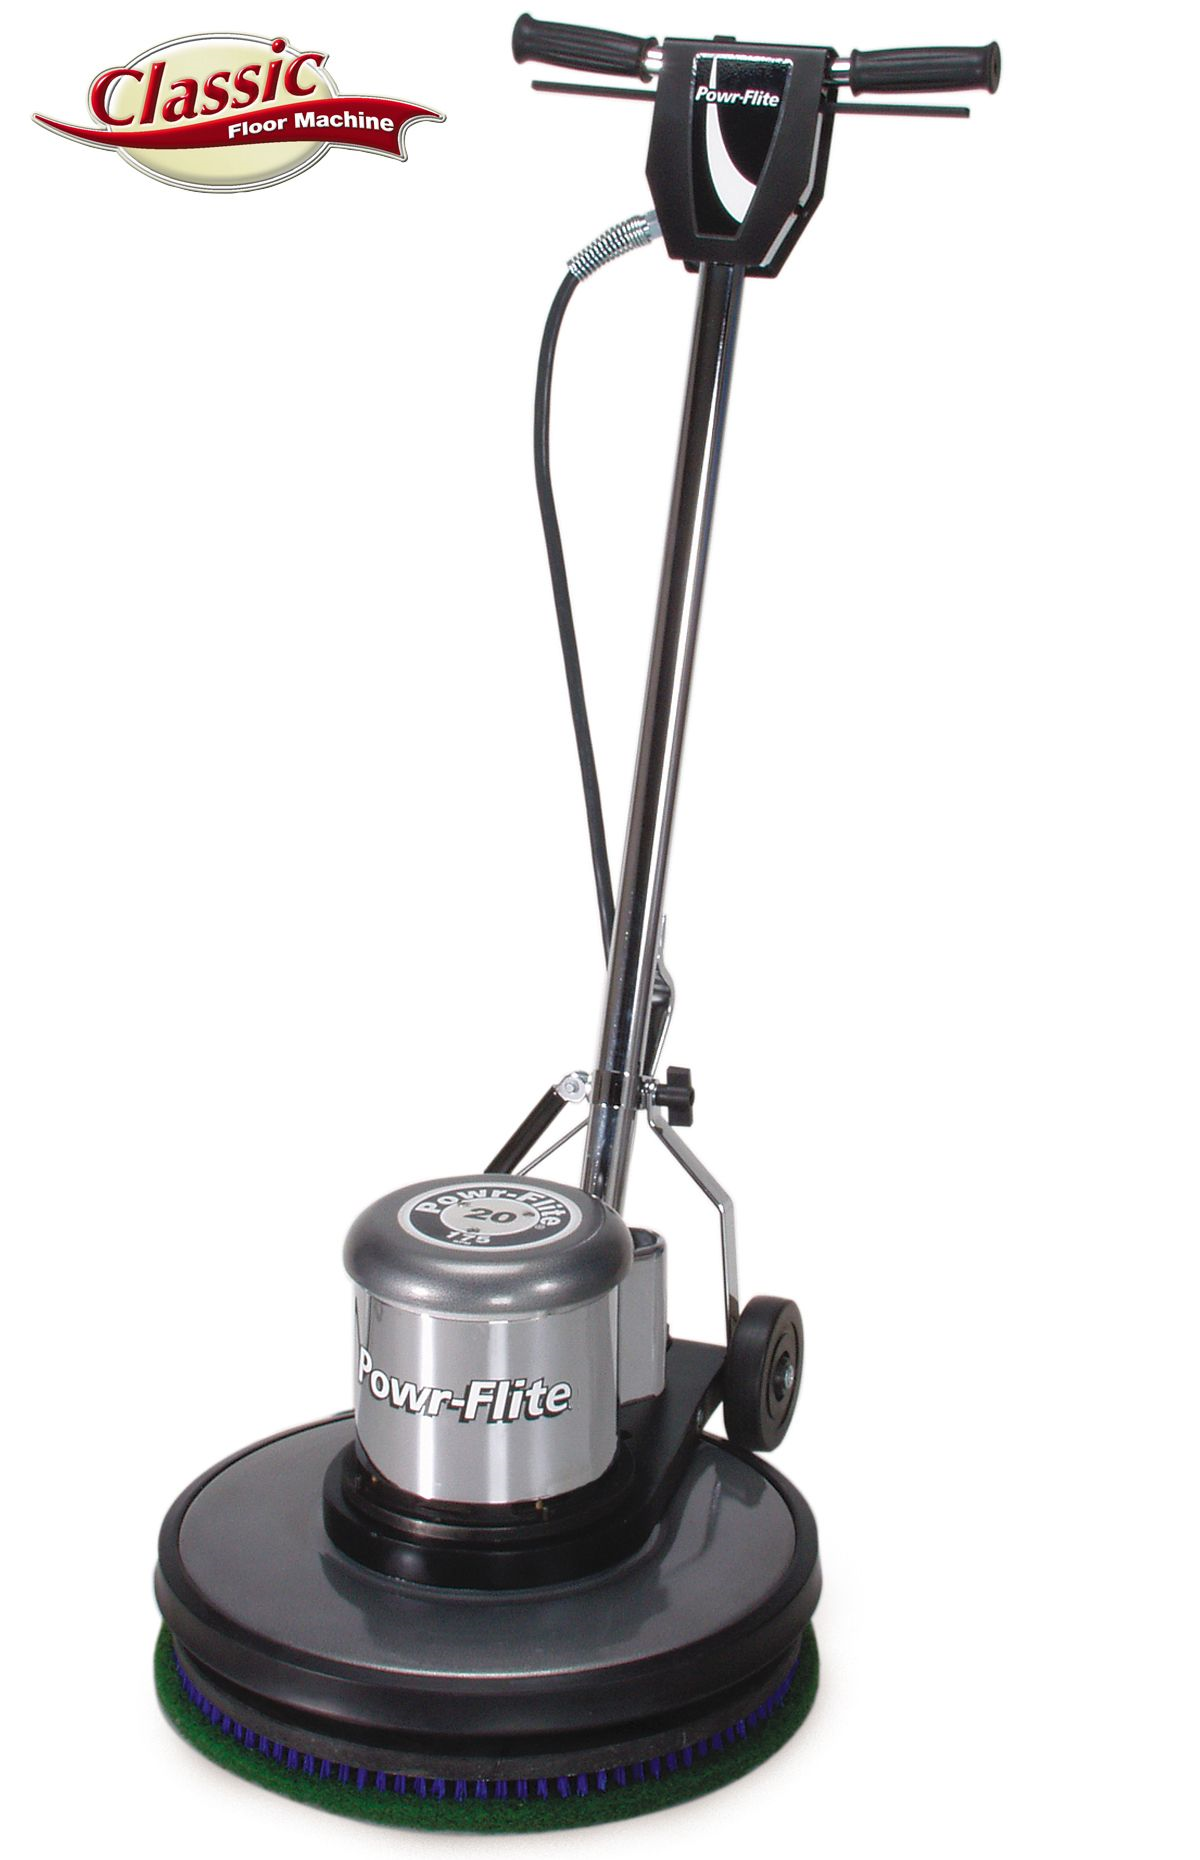 "C201HD Power-Flite 20"" Size, 1.5 HP Motor, 175 RPM, Classic Metal Floor Machine"